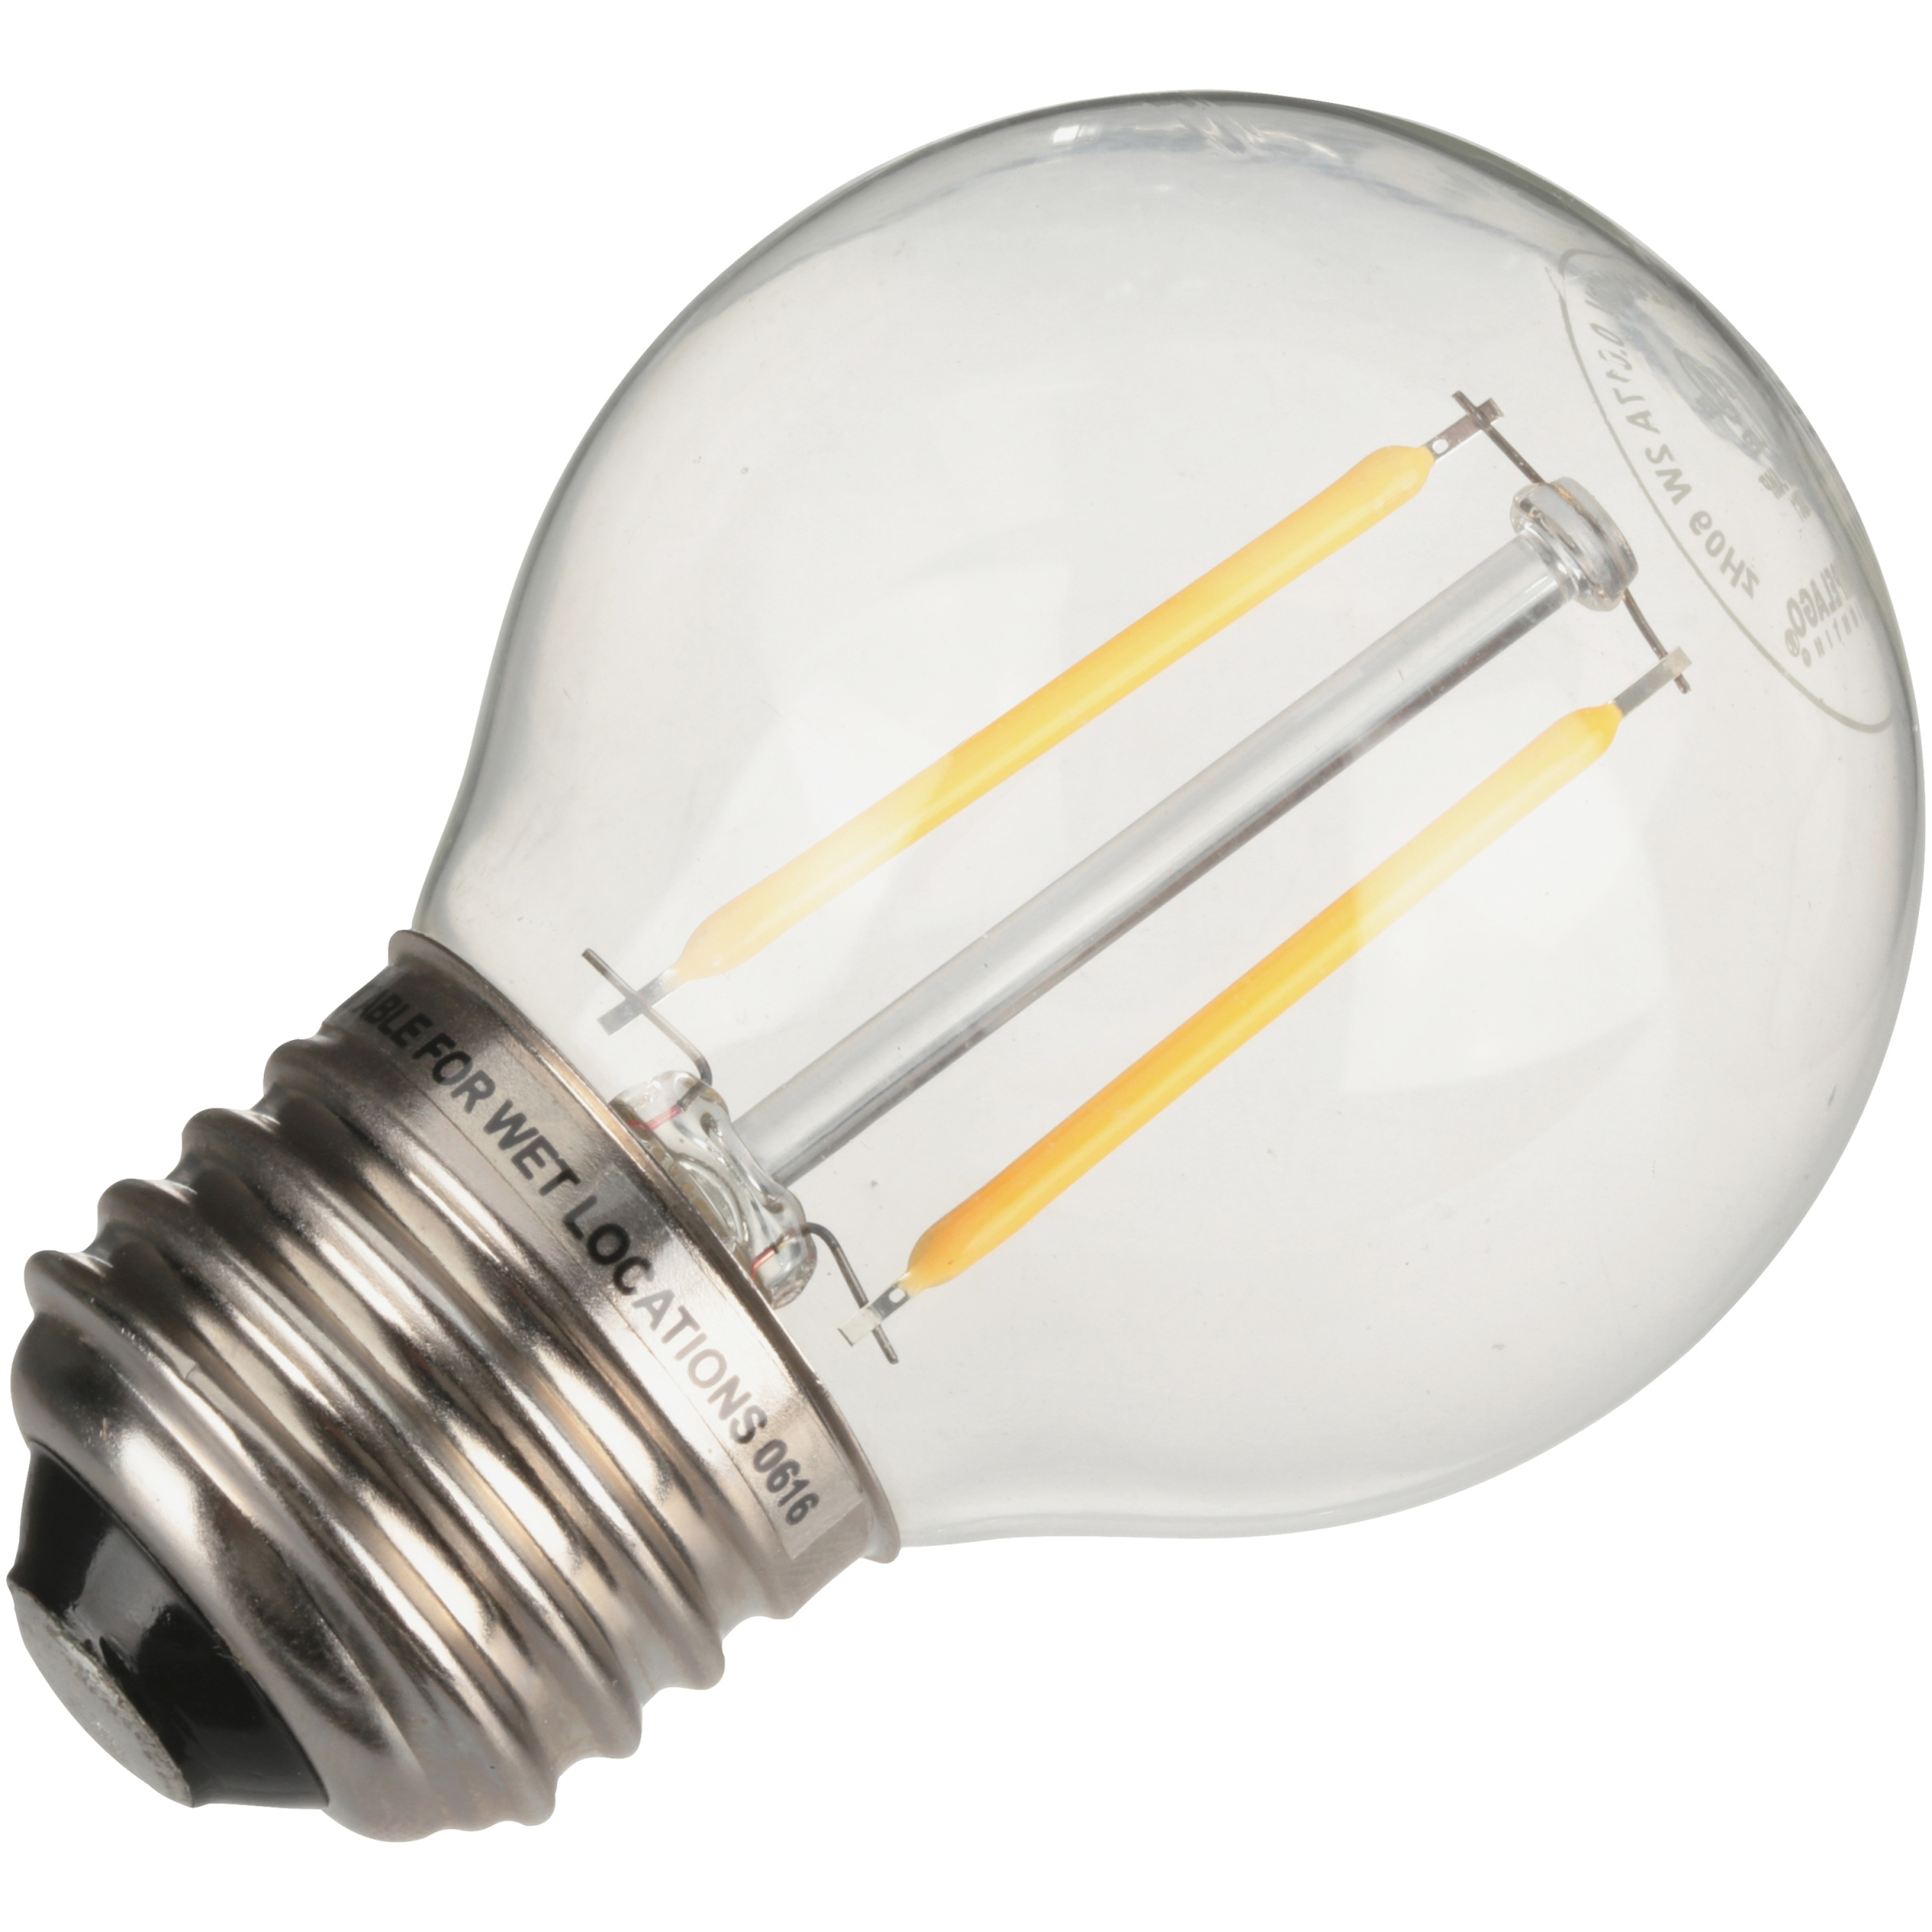 Nu-Tech LED Filament Globe Light Bulb, 2W (25W Equivalent), Clear, 1-count